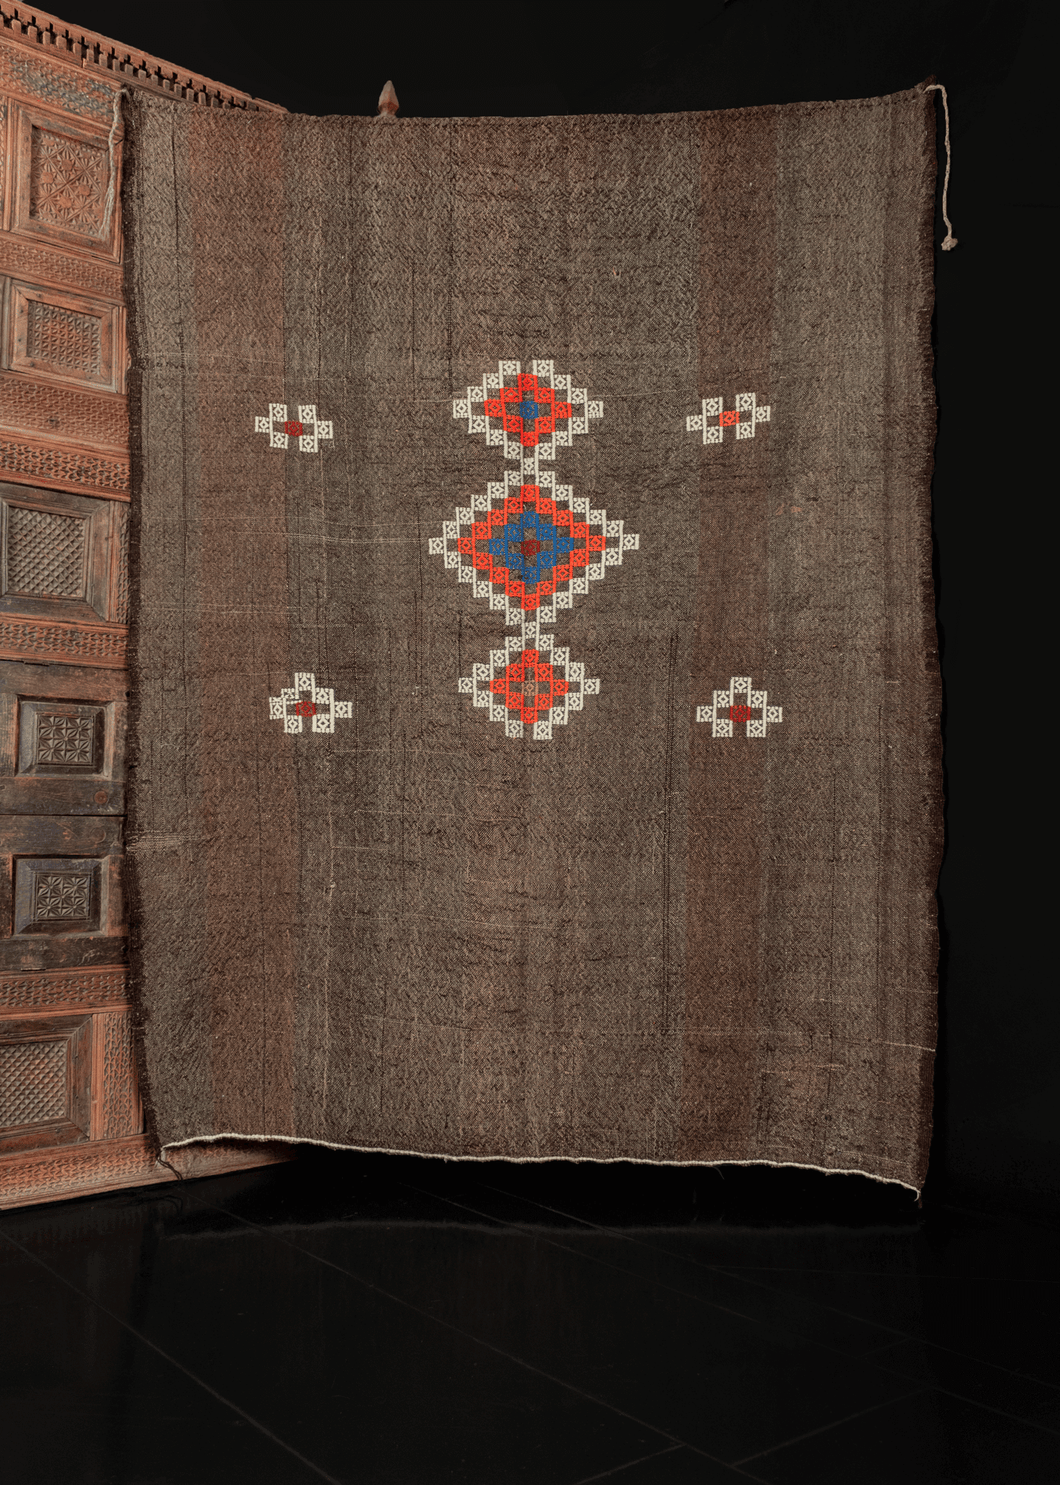 Brown kilim with goat hair and geometric shapes embroidered on top in blue orange and white